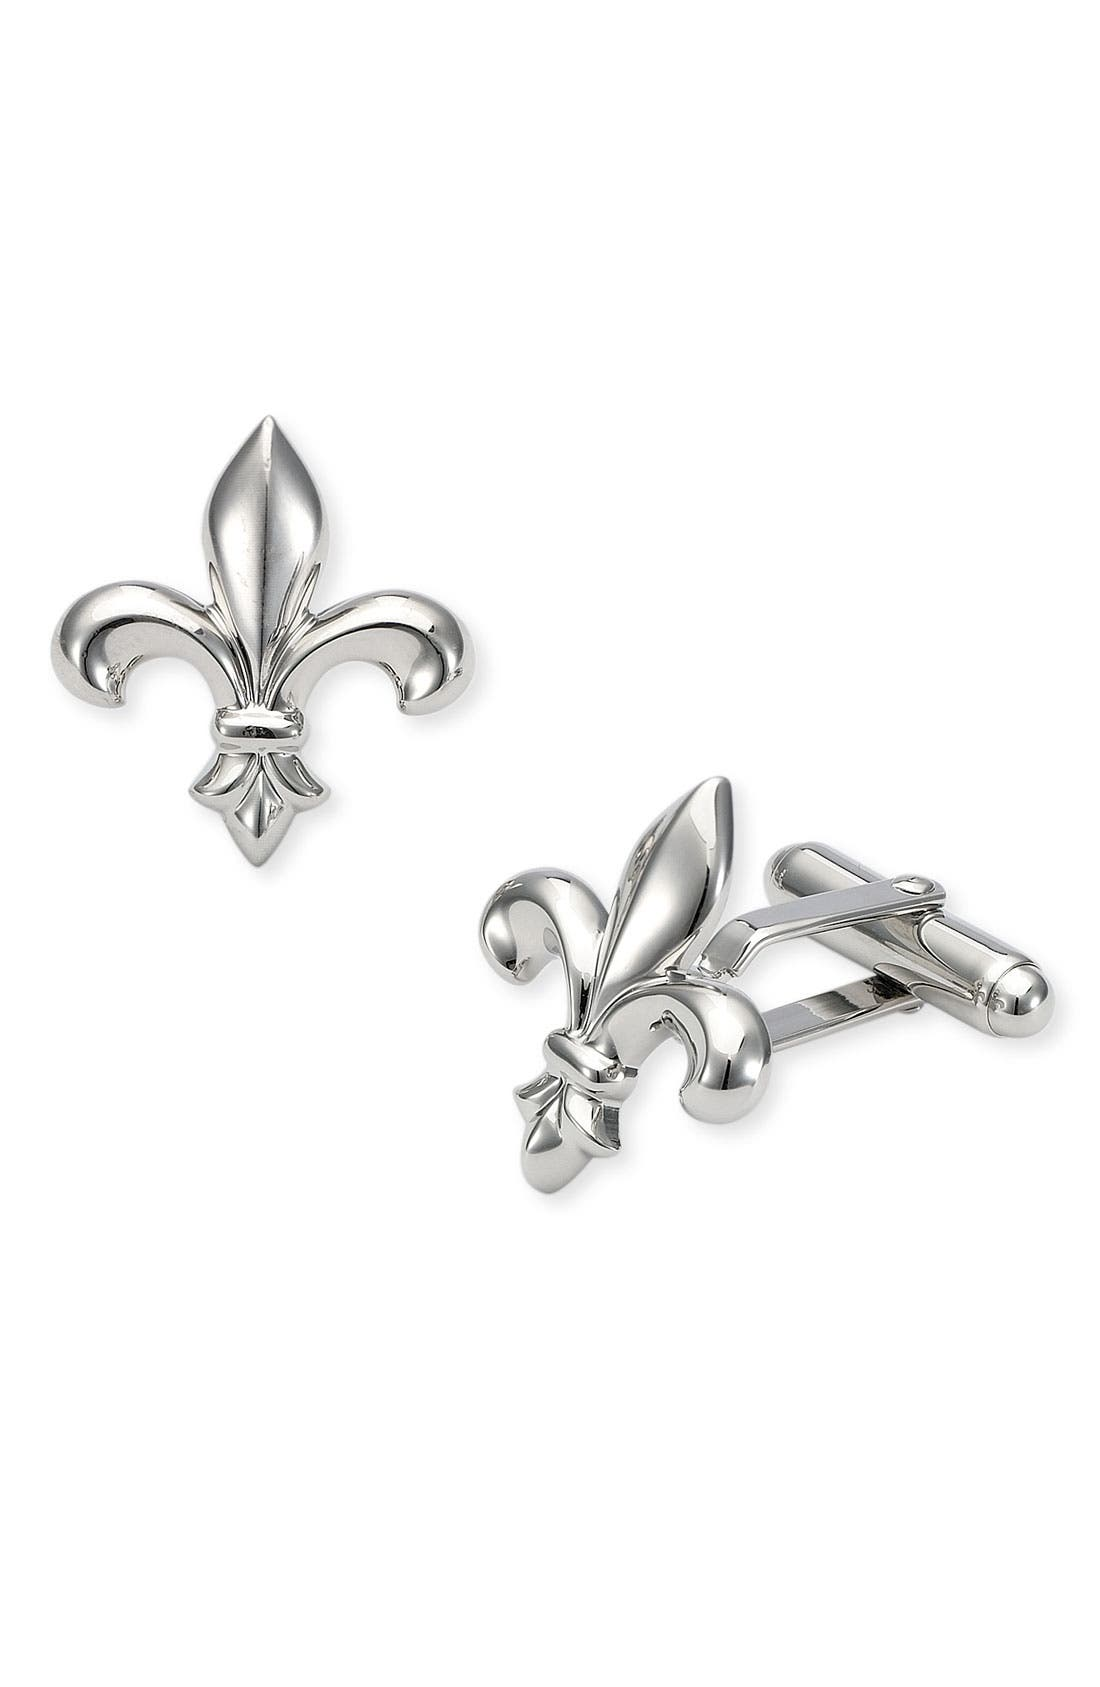 Fleur de Lis Cuff Links,                         Main,                         color, SILVER